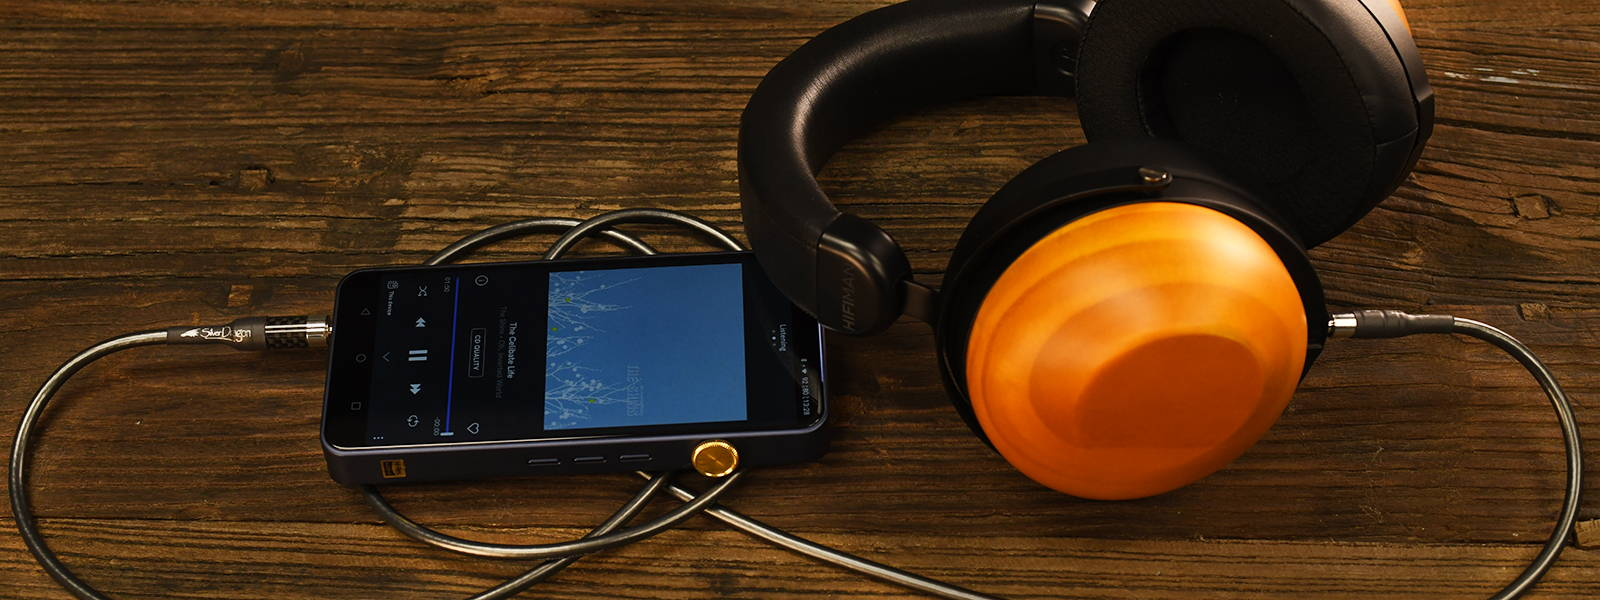 R10D headphone with iBasso DX300 DAP